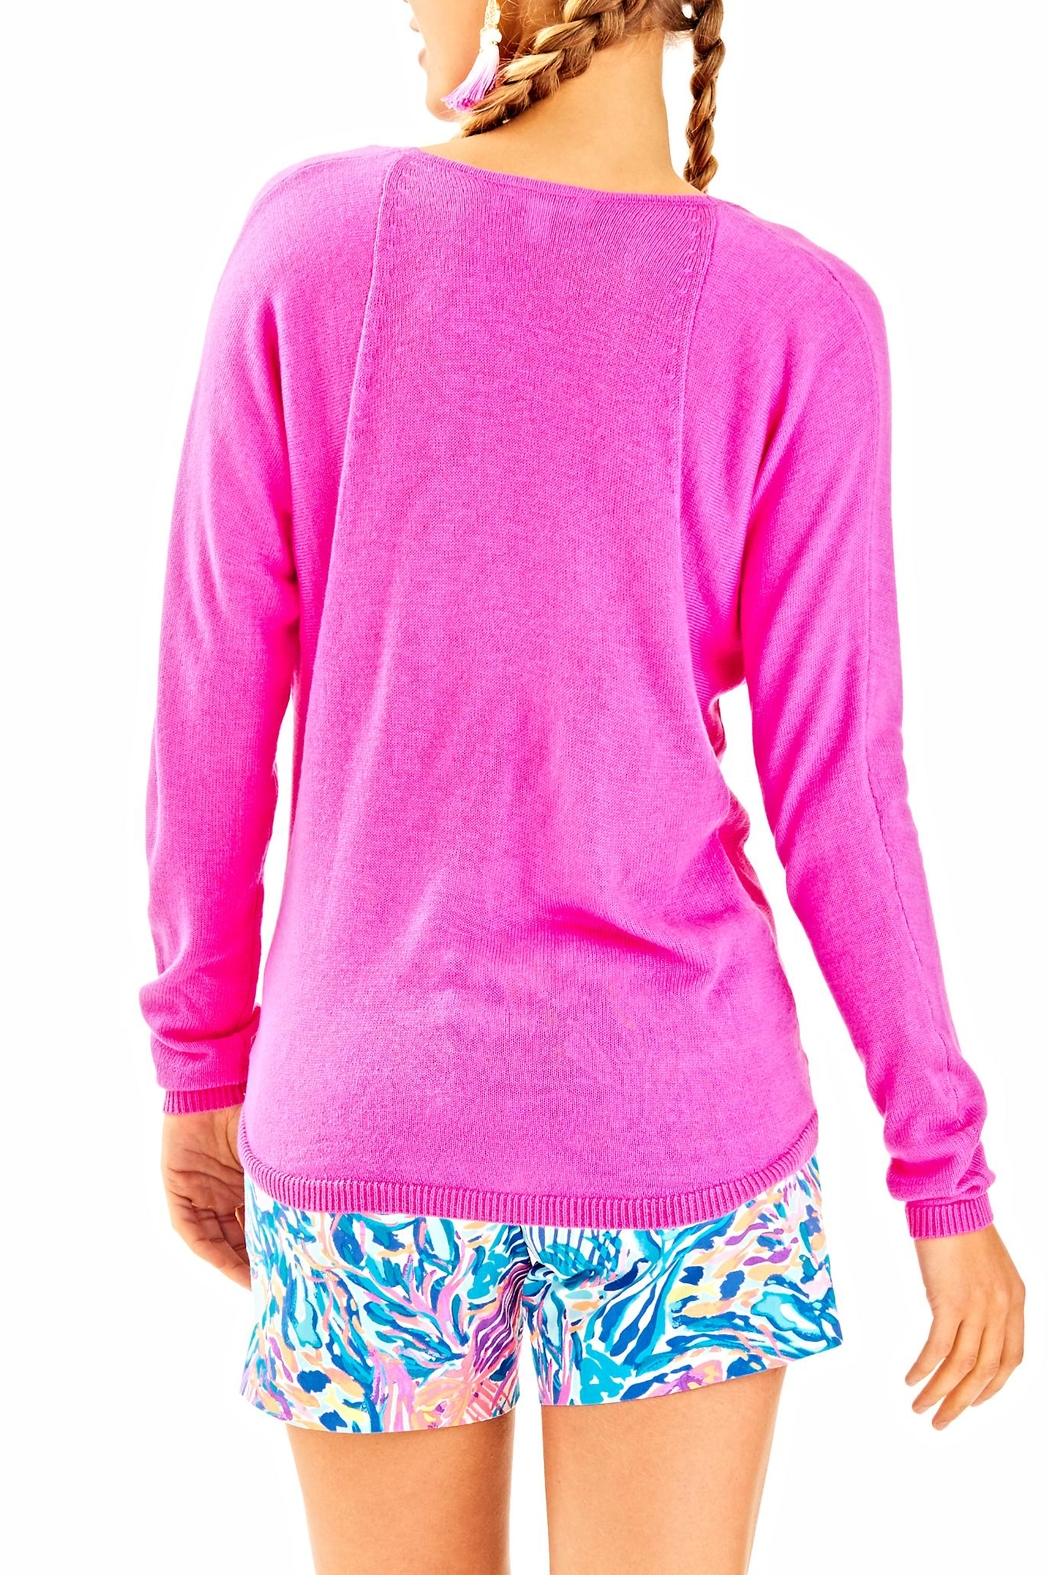 Lilly Pulitzer Stasia Sweater - Front Full Image